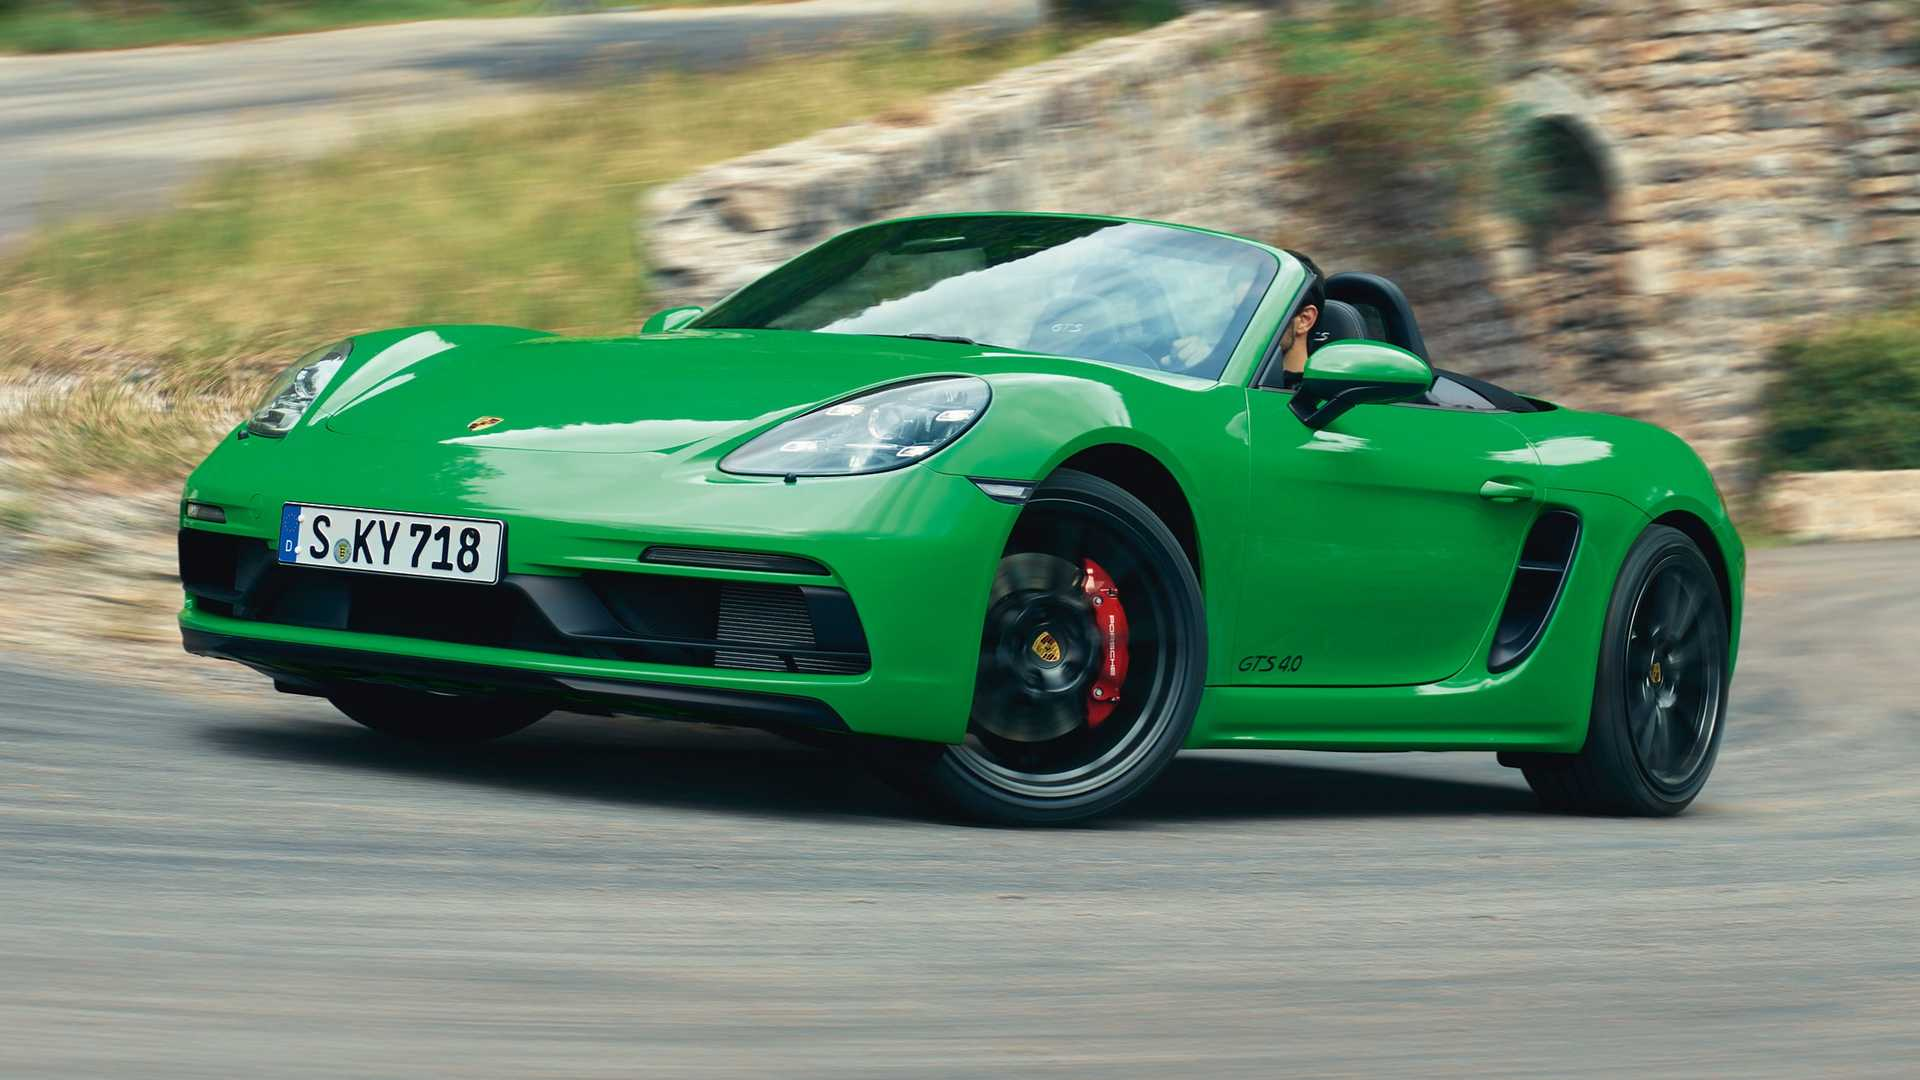 718 Boxster, Cayman GTS 4.0 revealed as best new Porsche money can buy